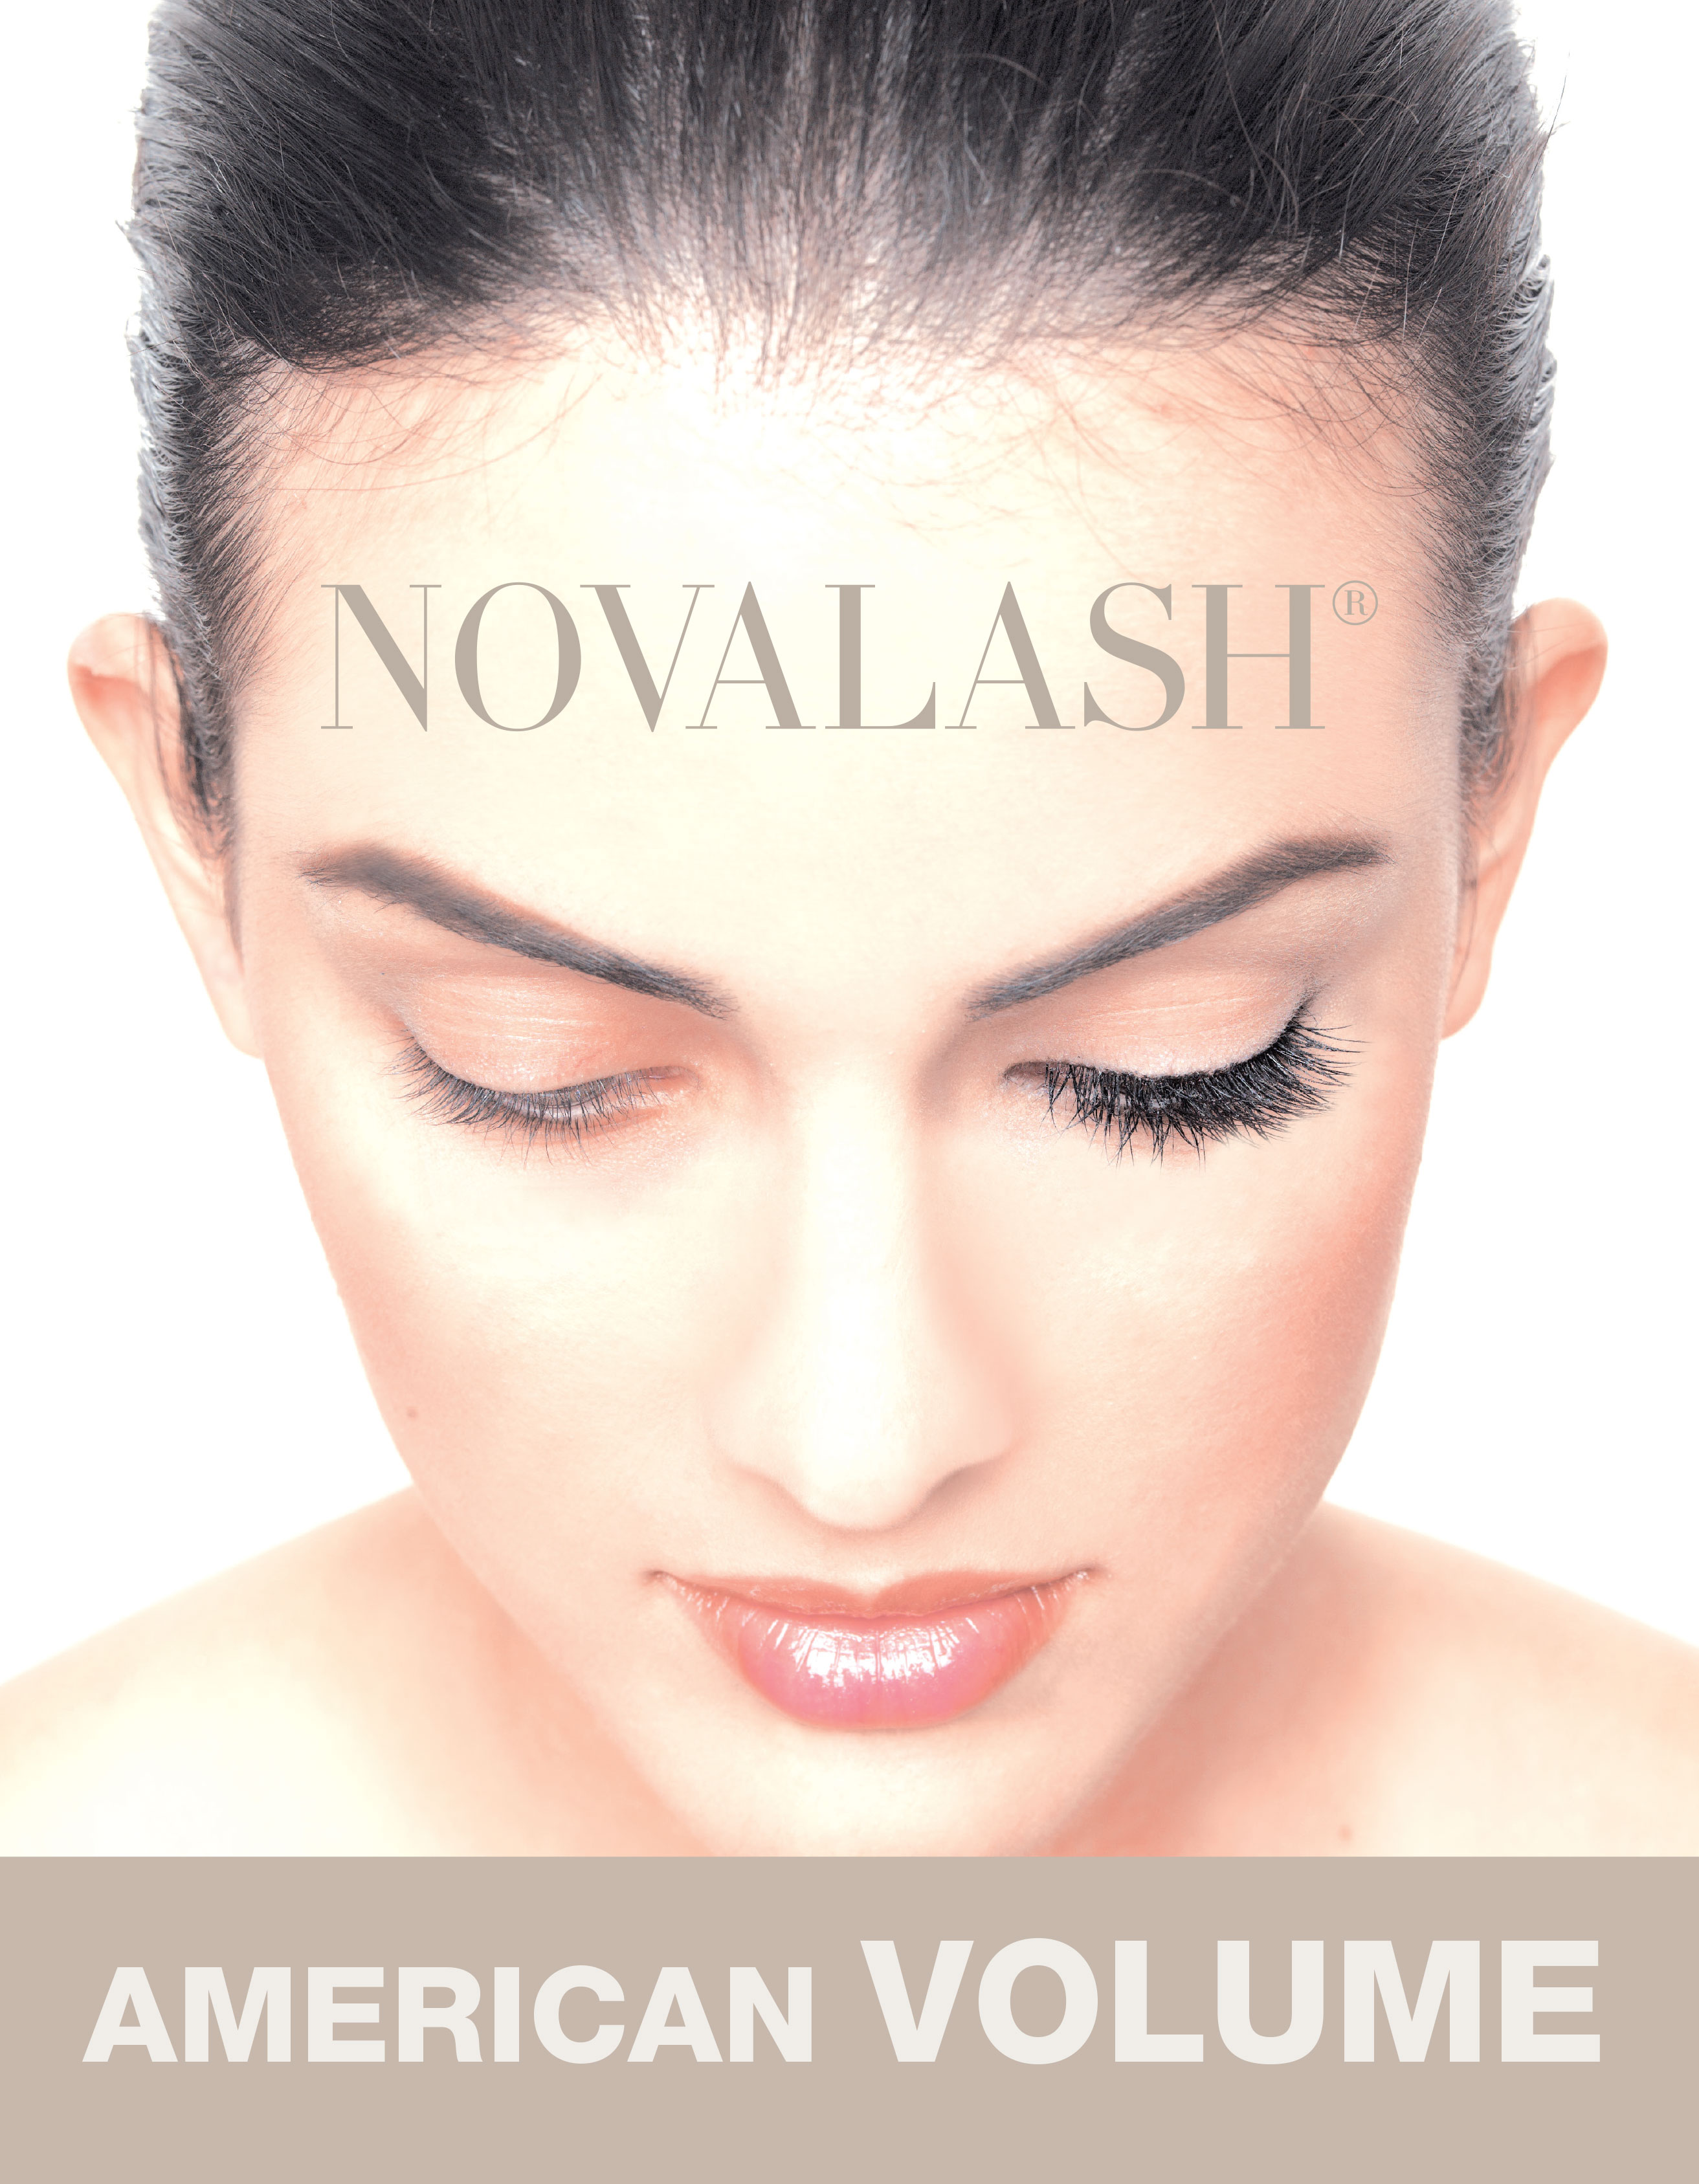 NovaLash Introducing New Volume Lash Service - News - Modern Salon